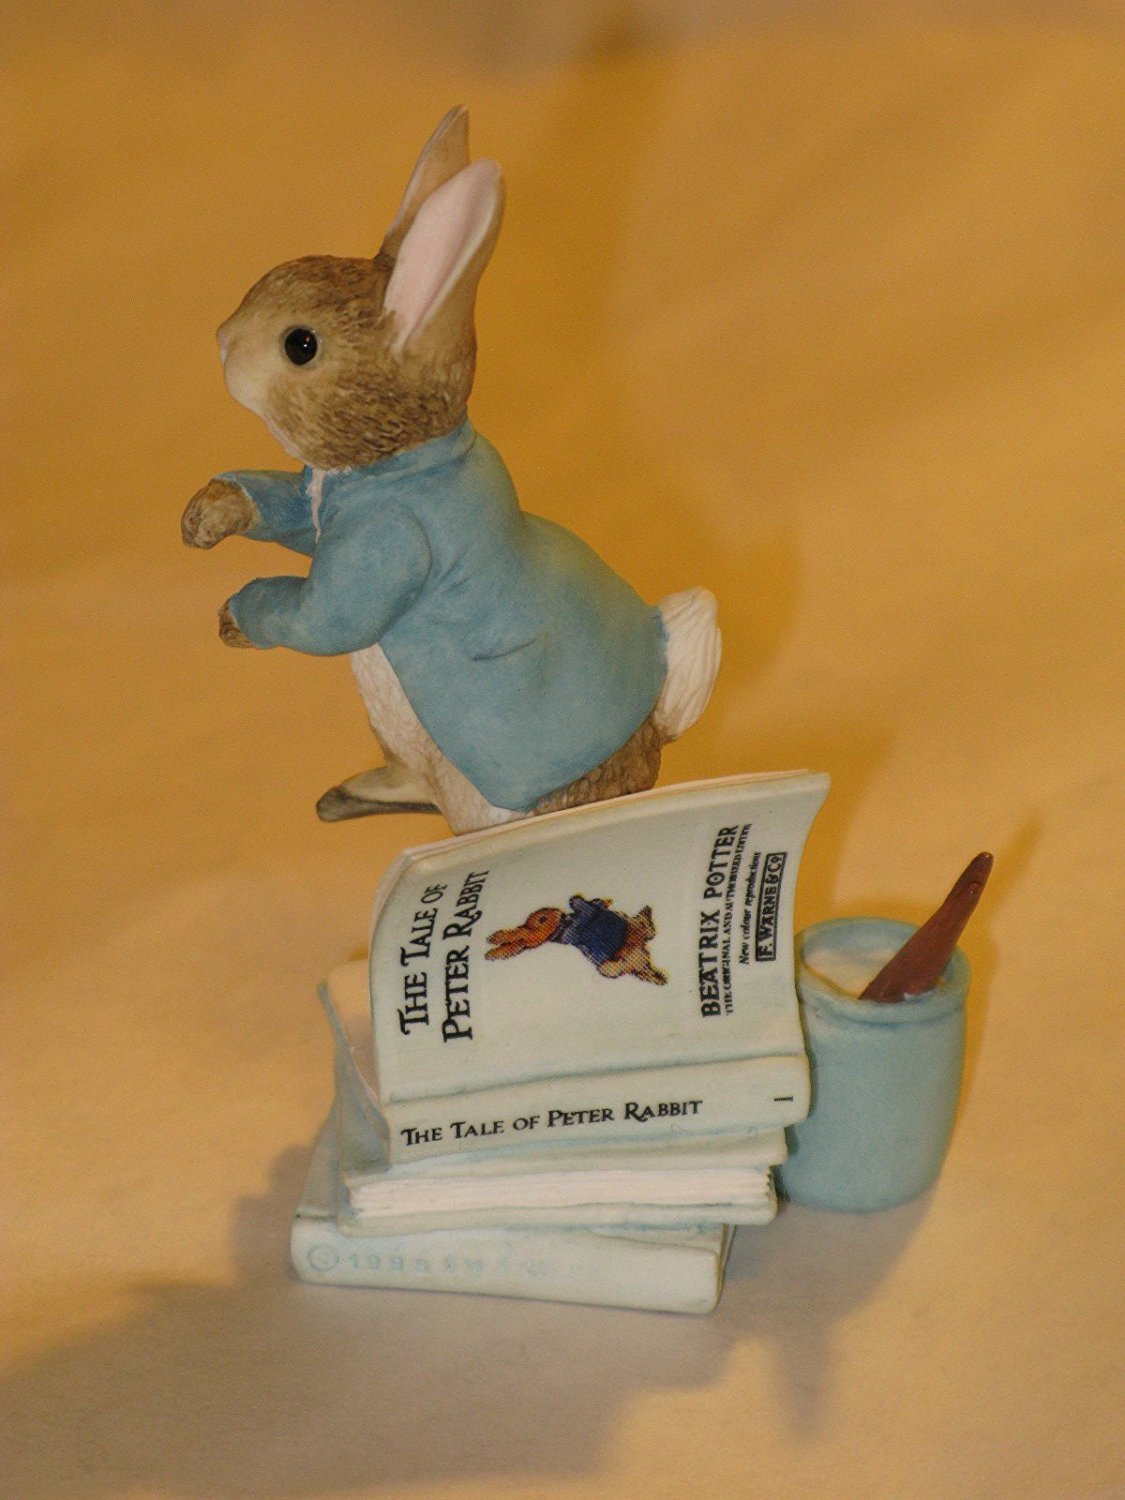 The World Of Beatrix Potter - Peter Rabbit Figurine # 199443 - Retired